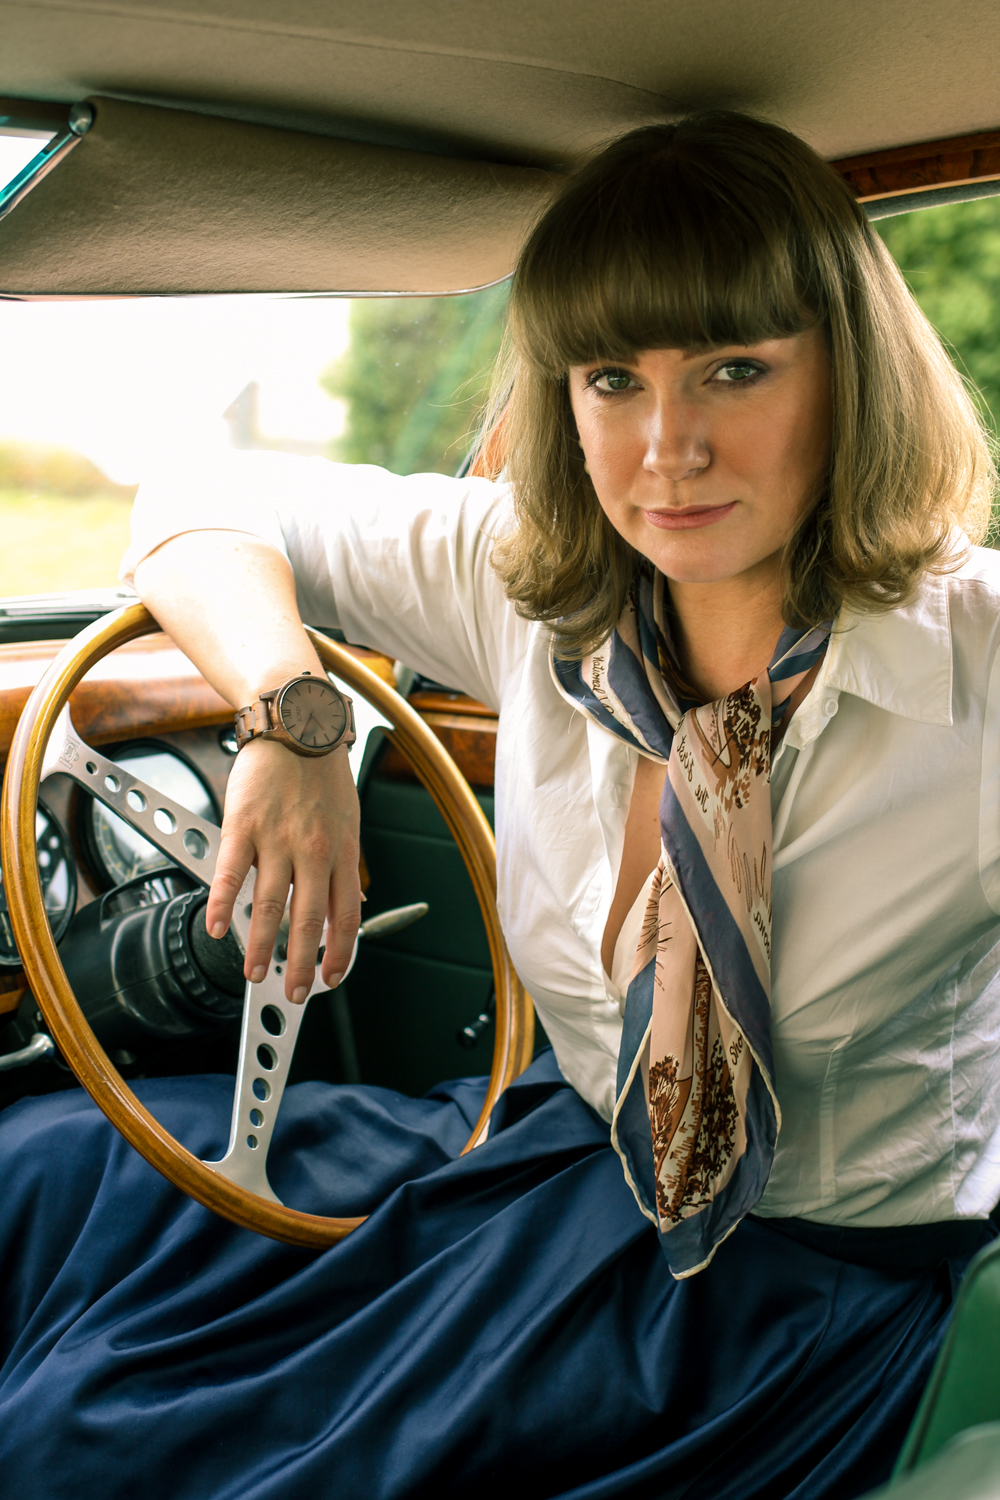 Liana of @findingfemme wears a JORD Wood Watch in her Jaguar Mark II.